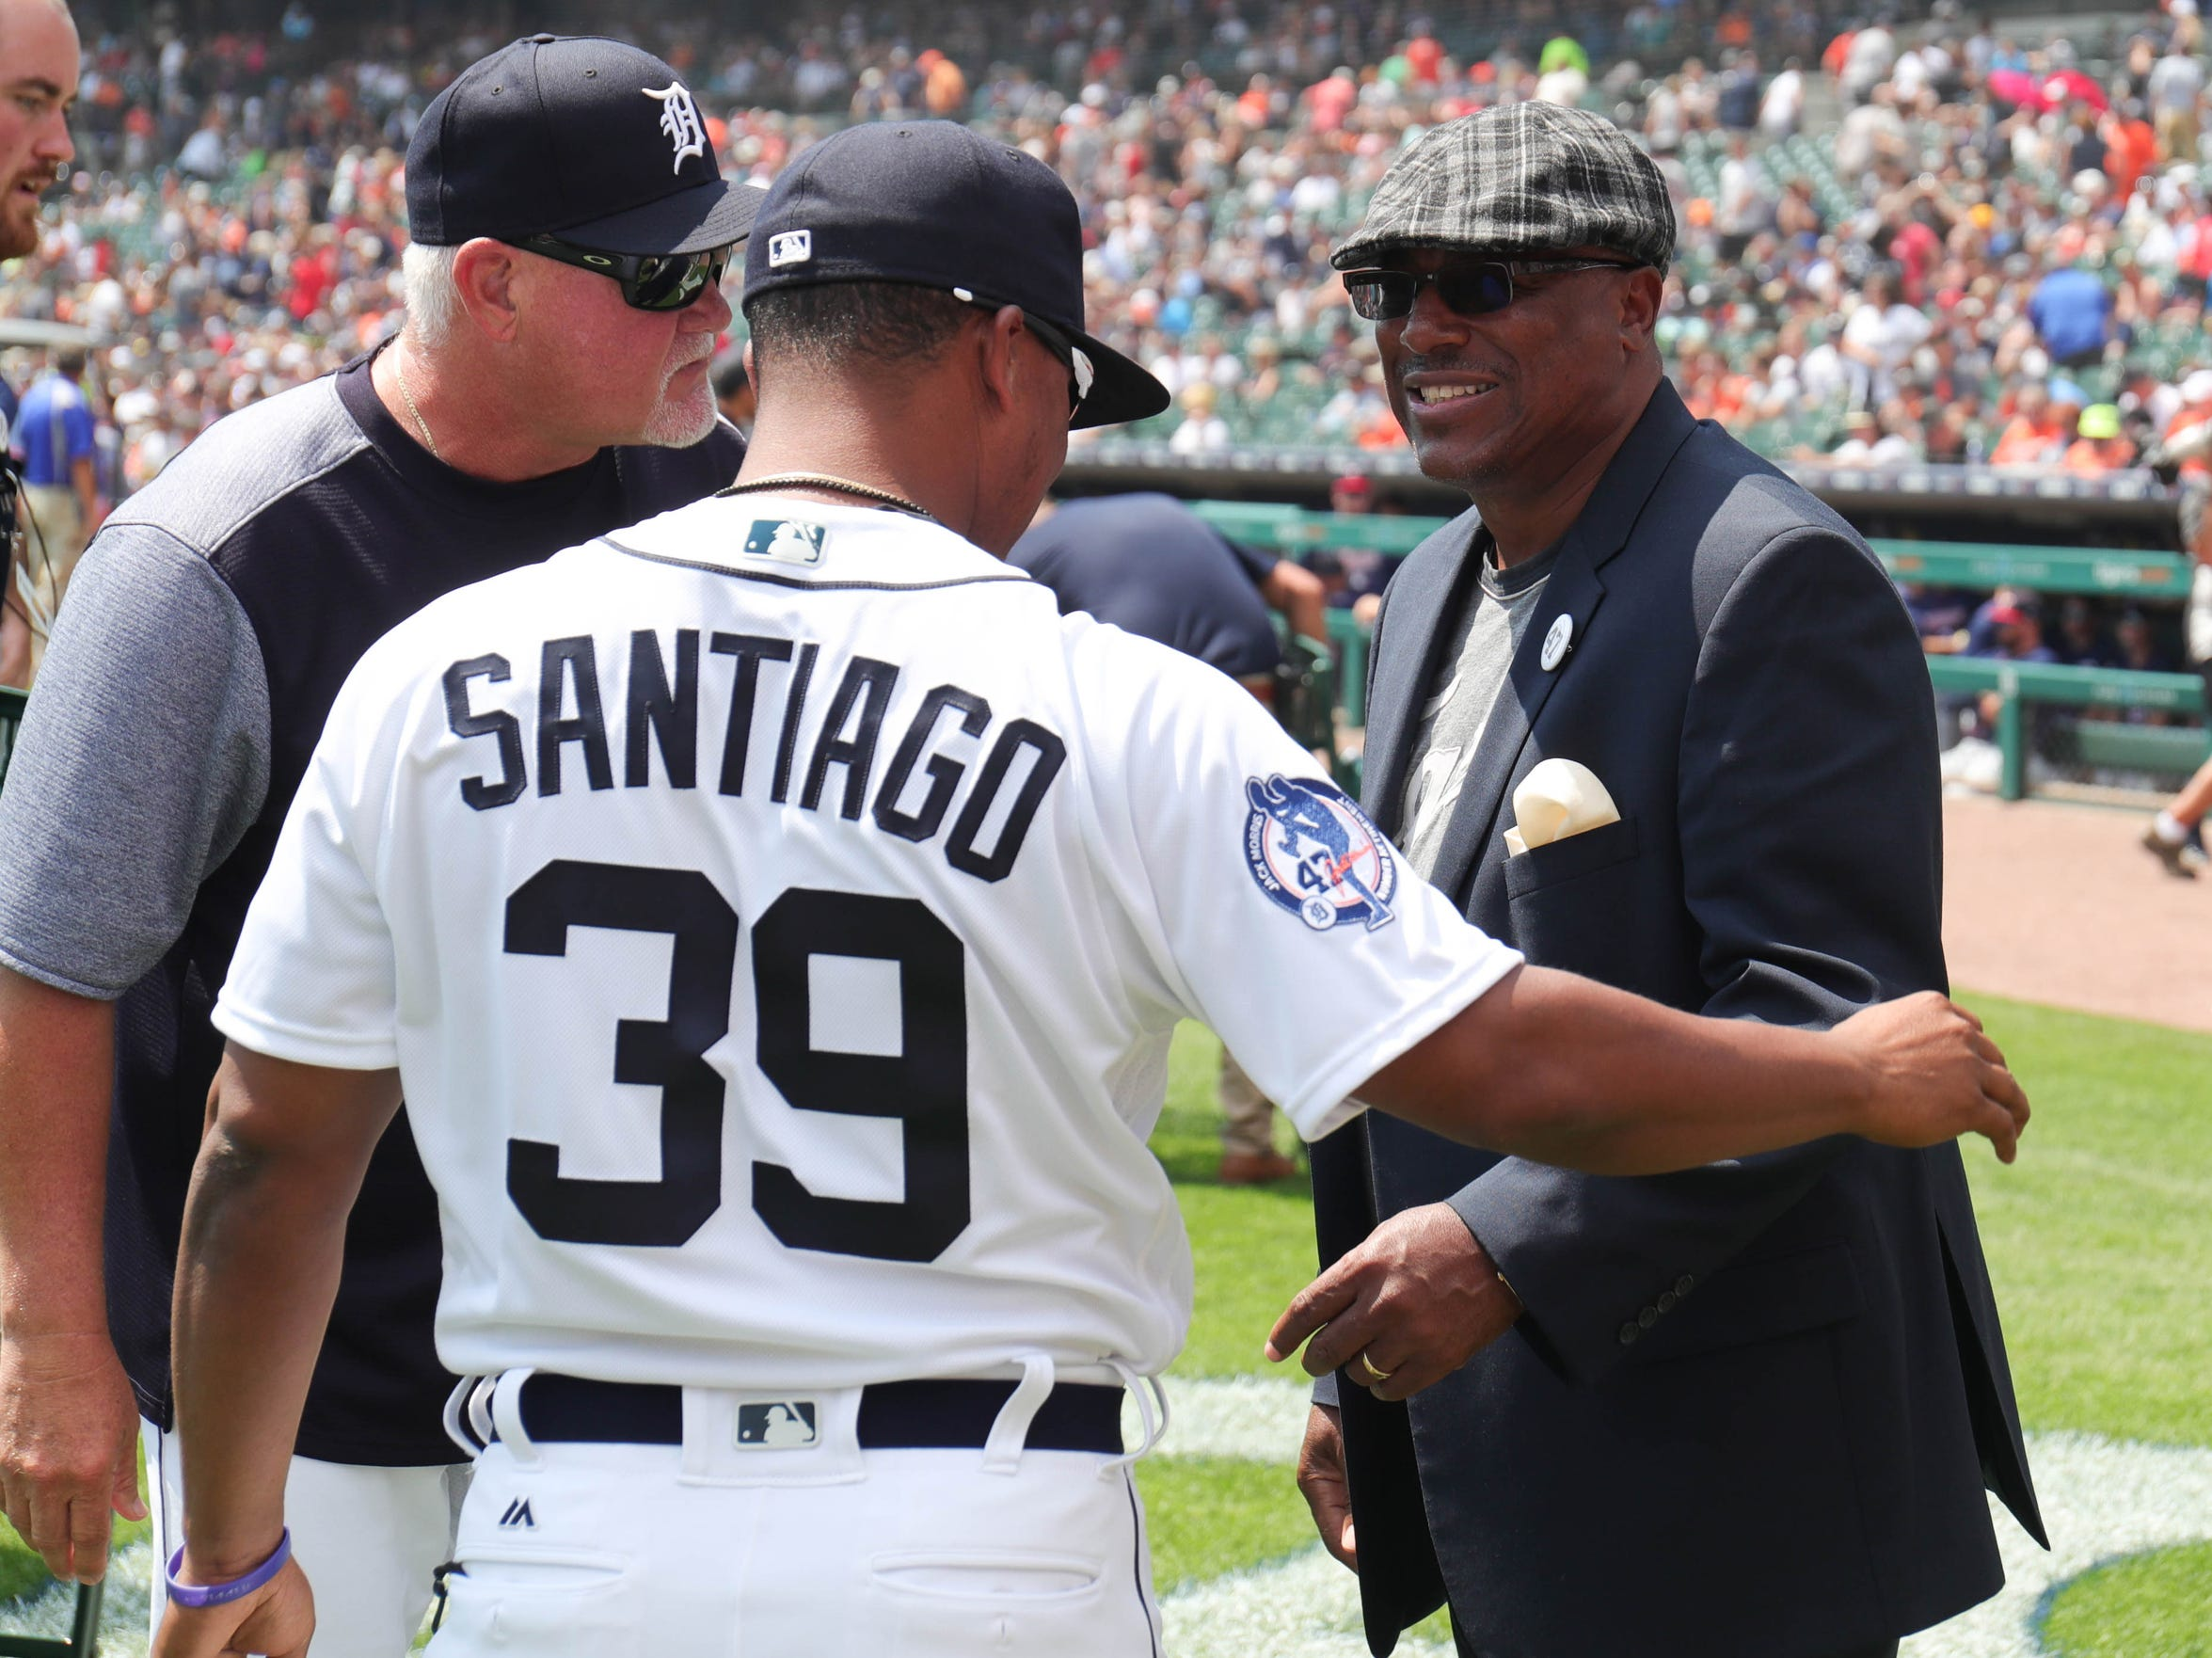 Tigers manager Ron Gardenhire, left, former shortstop Lou Whitaker and Tiger Ramone Santaigo talk before the start of the Tigers game against Minnesota on Sunday, August 12, 2018, at Comerica Park in Detroit.